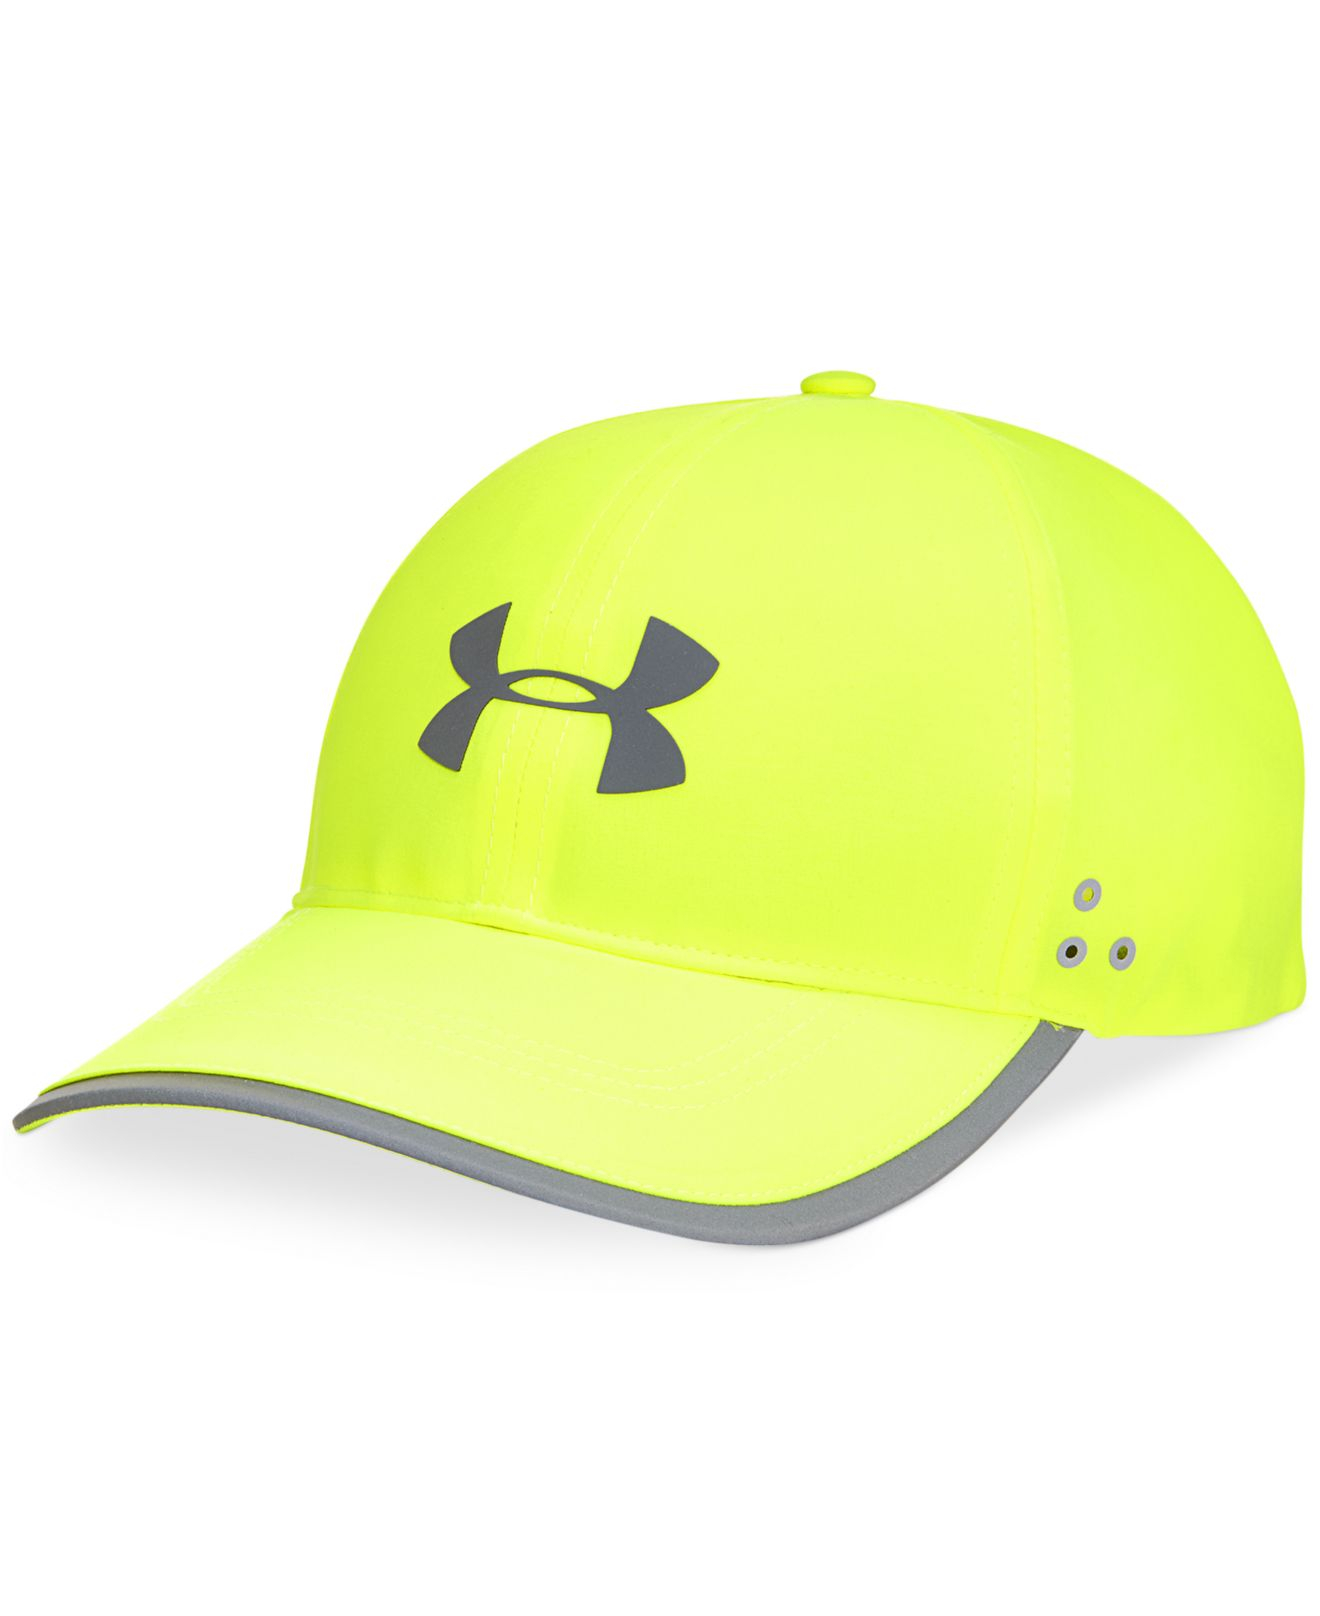 separation shoes 9030e ffd3a Under Armour Ultimate Run Performance Hat in Yellow for Men - Lyst